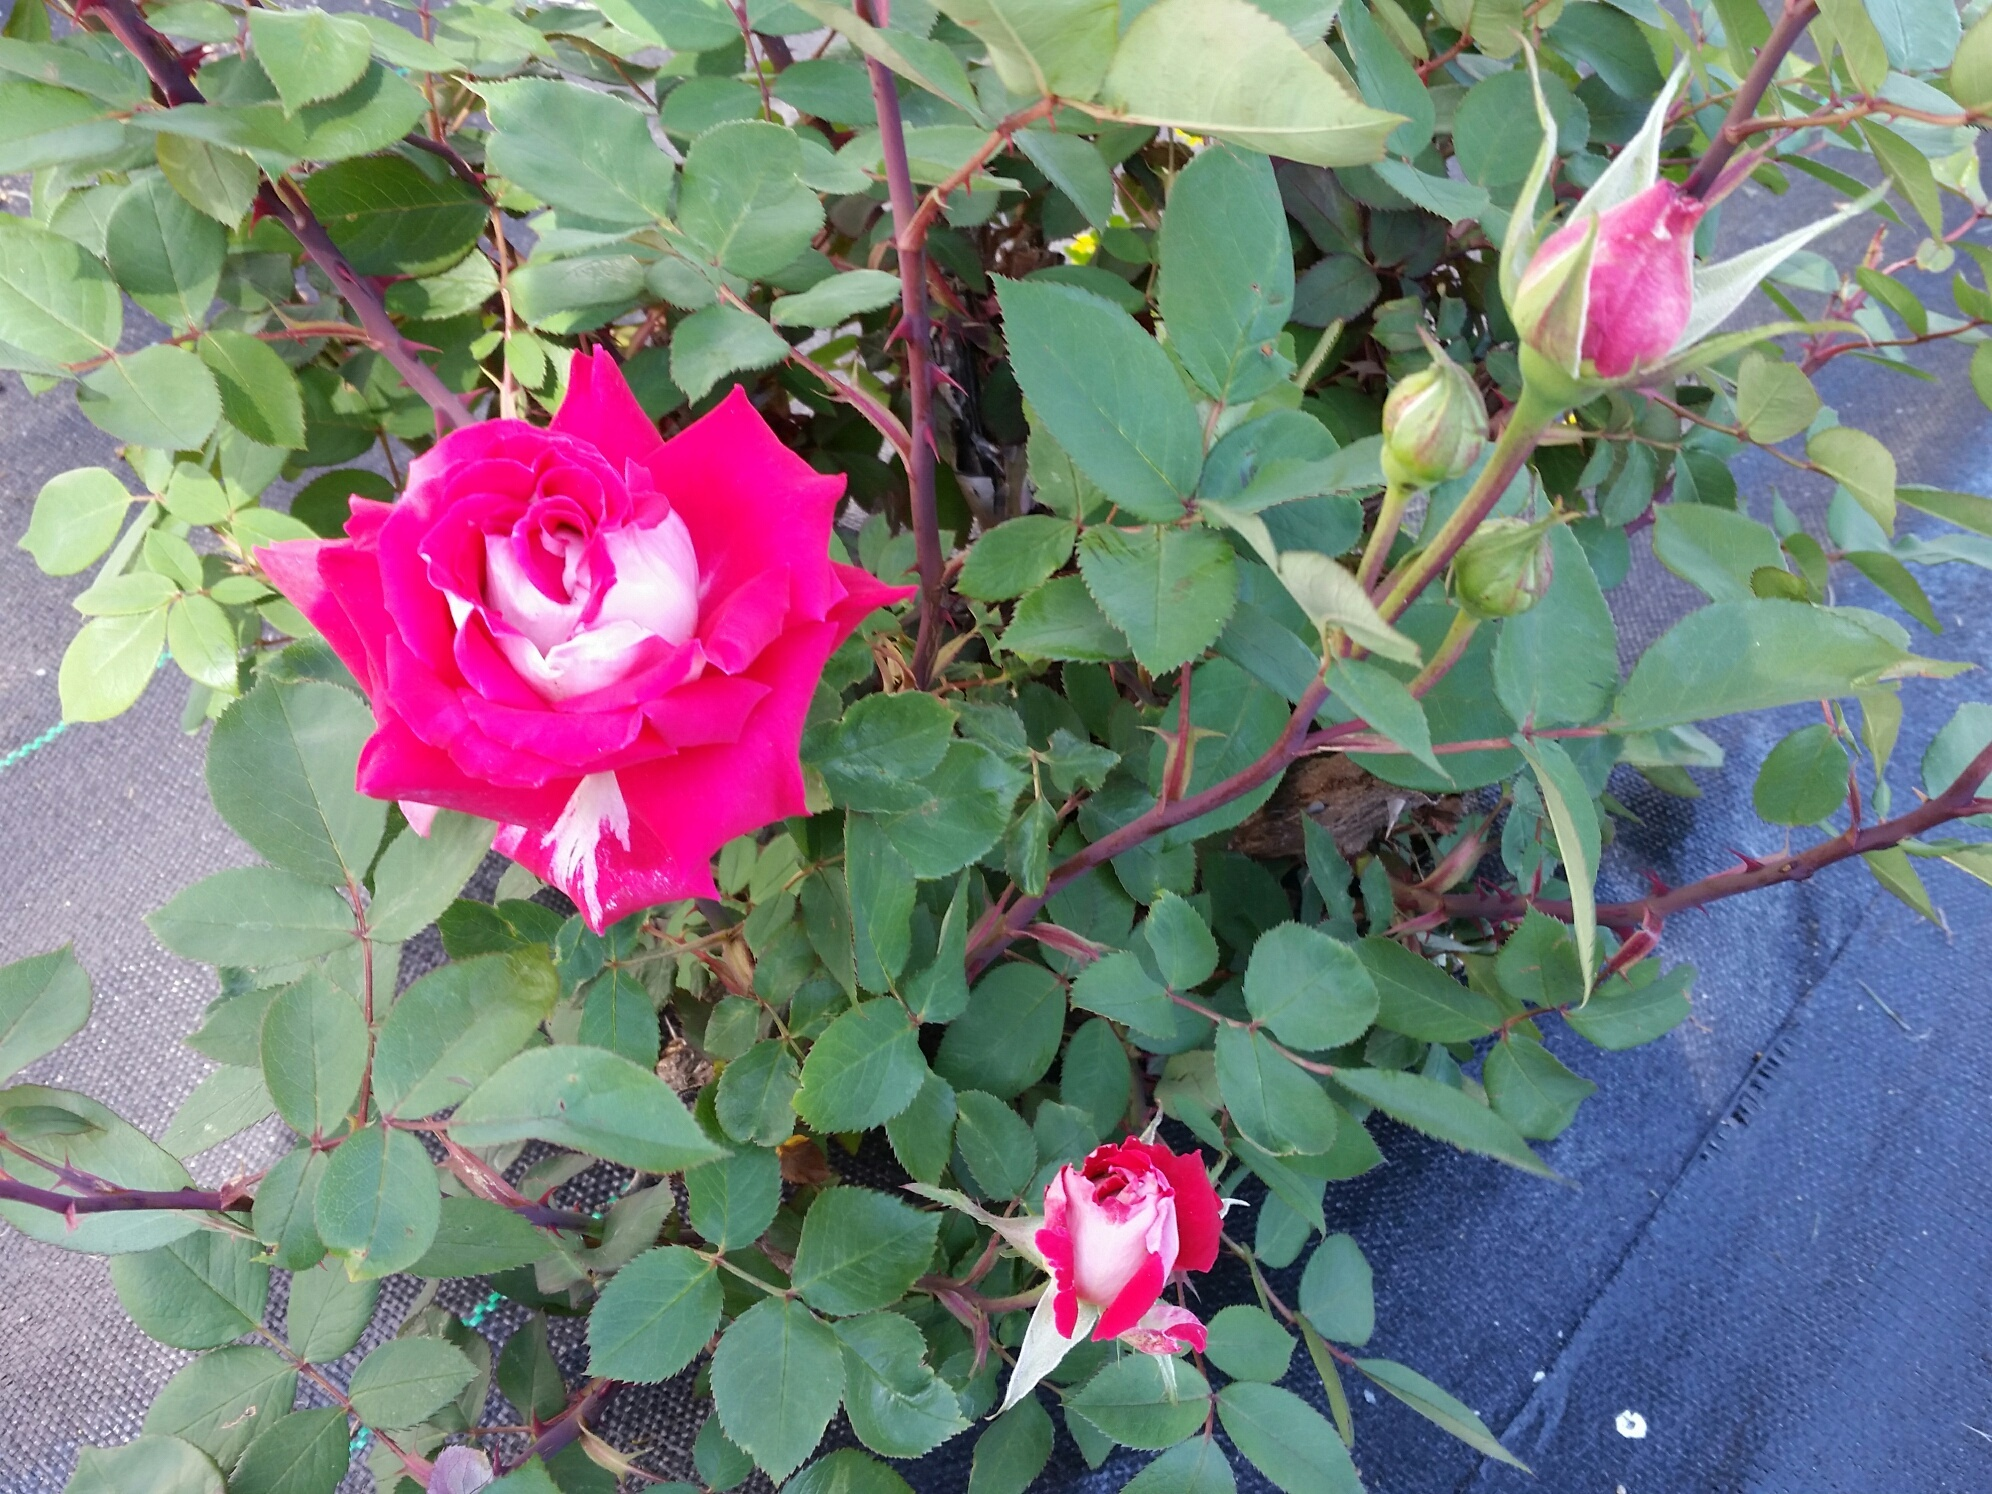 100 Happy Days Challenge: Day 22 (First Rose)